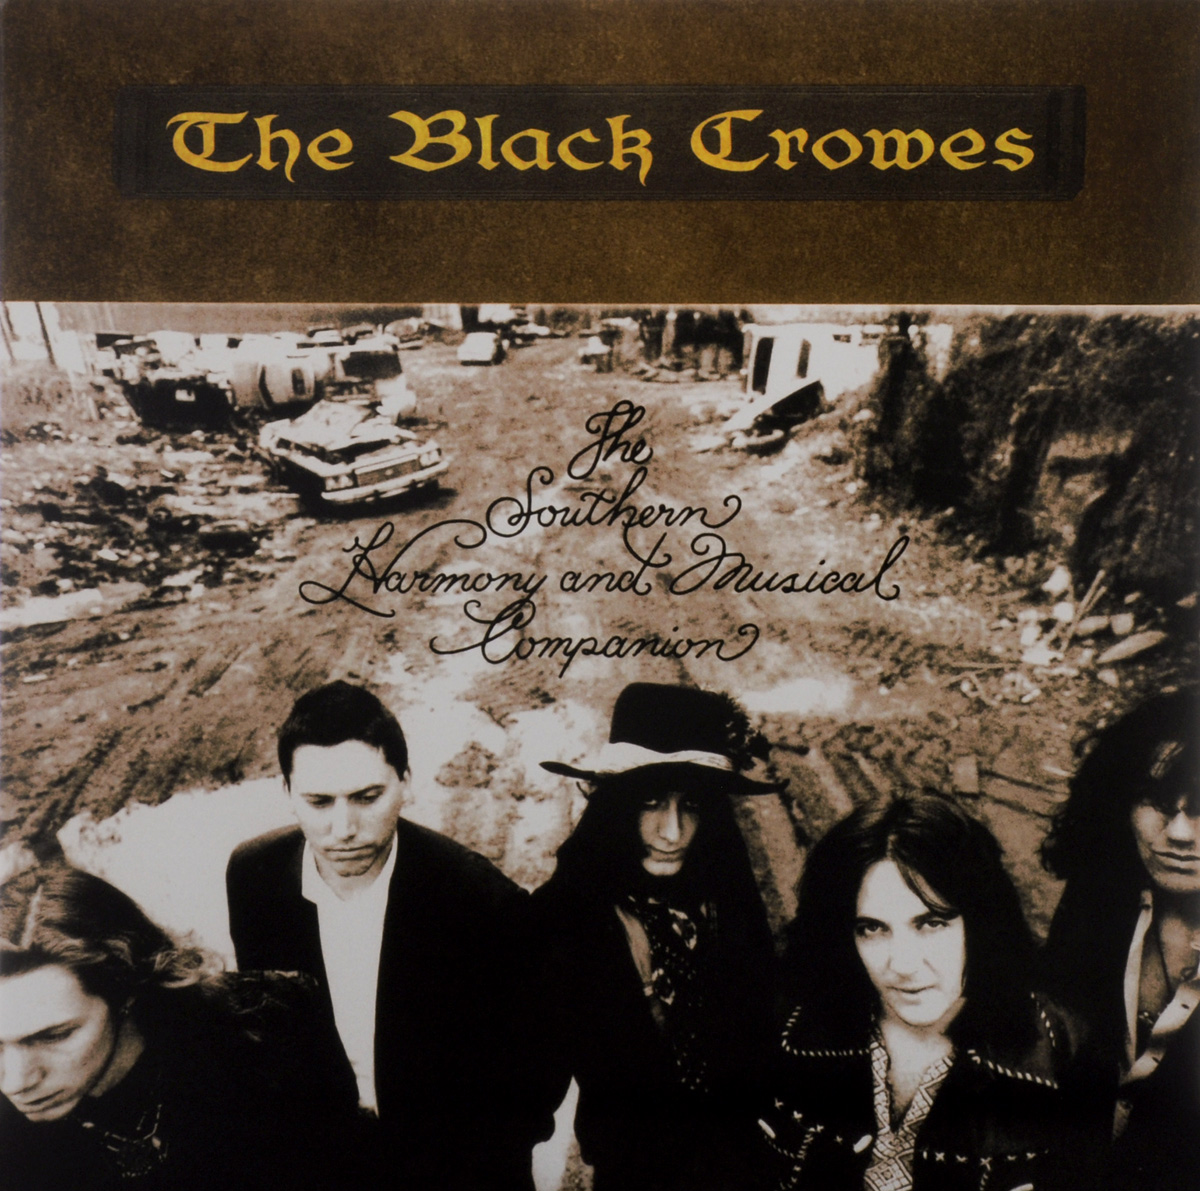 The Black Crowes The Black Crowes The Southern Harmony And Musical Companion 2 LP